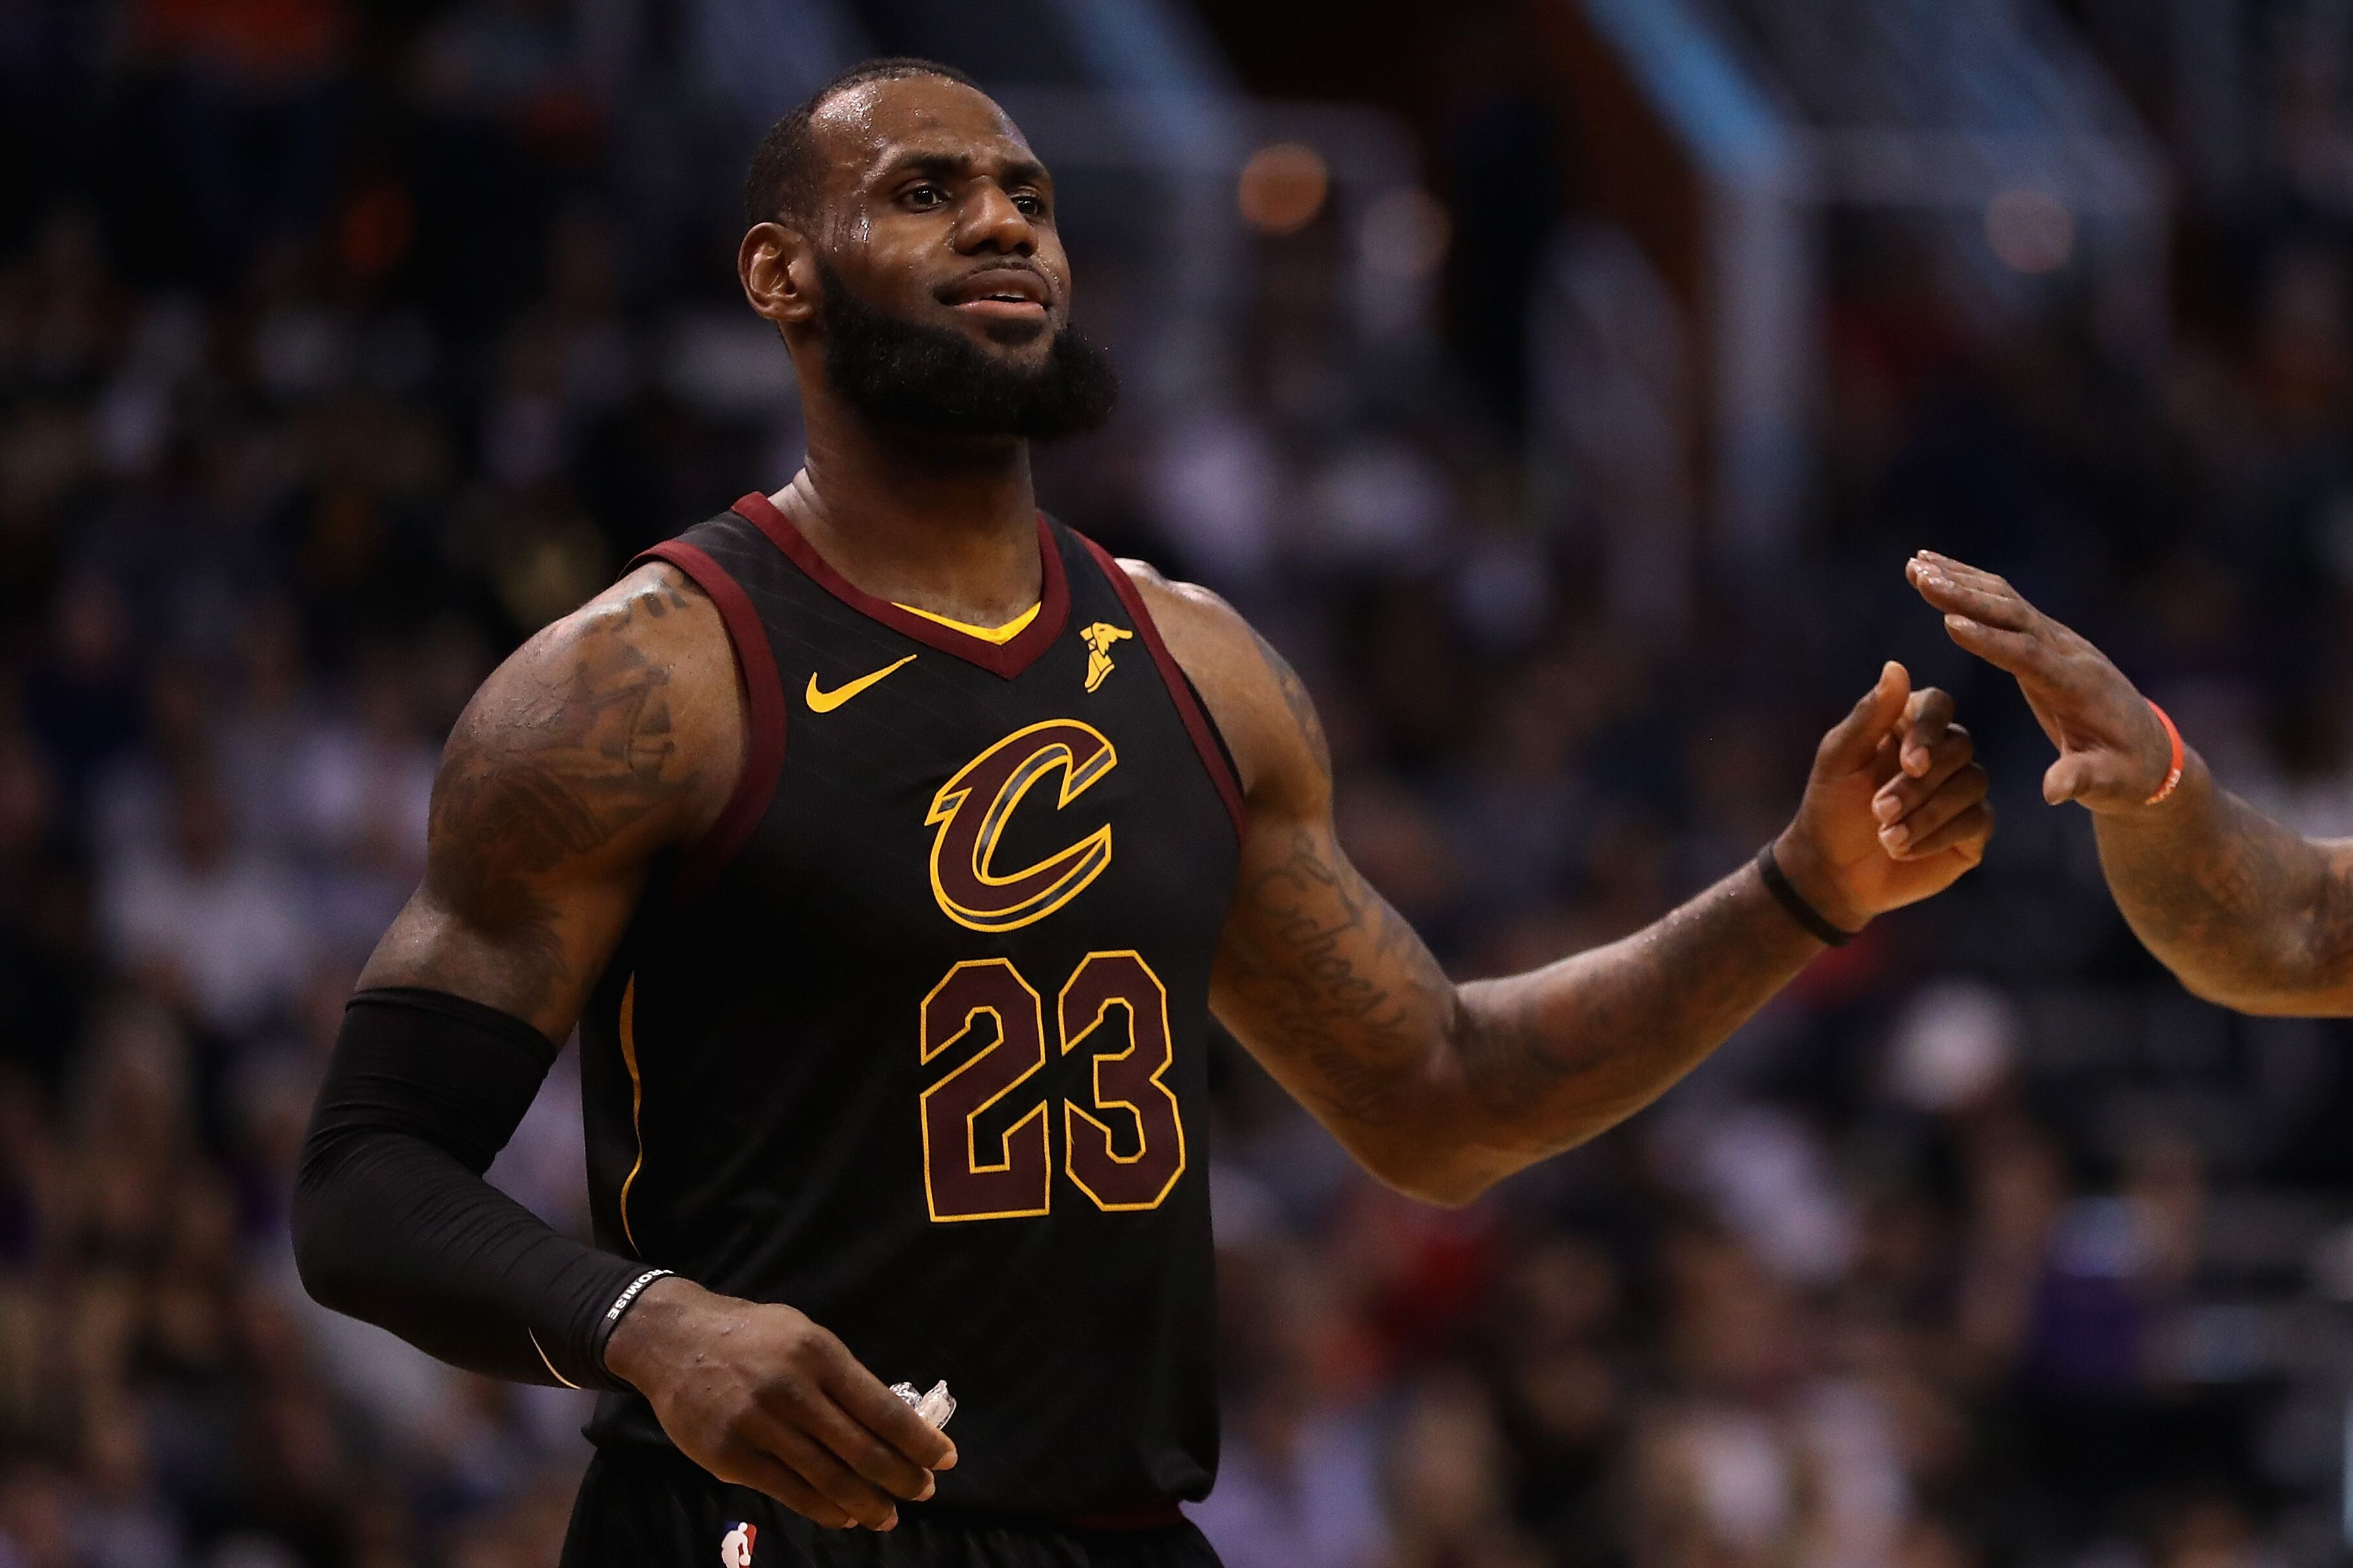 LeBron thanks fan for 'more than an athlete' poster